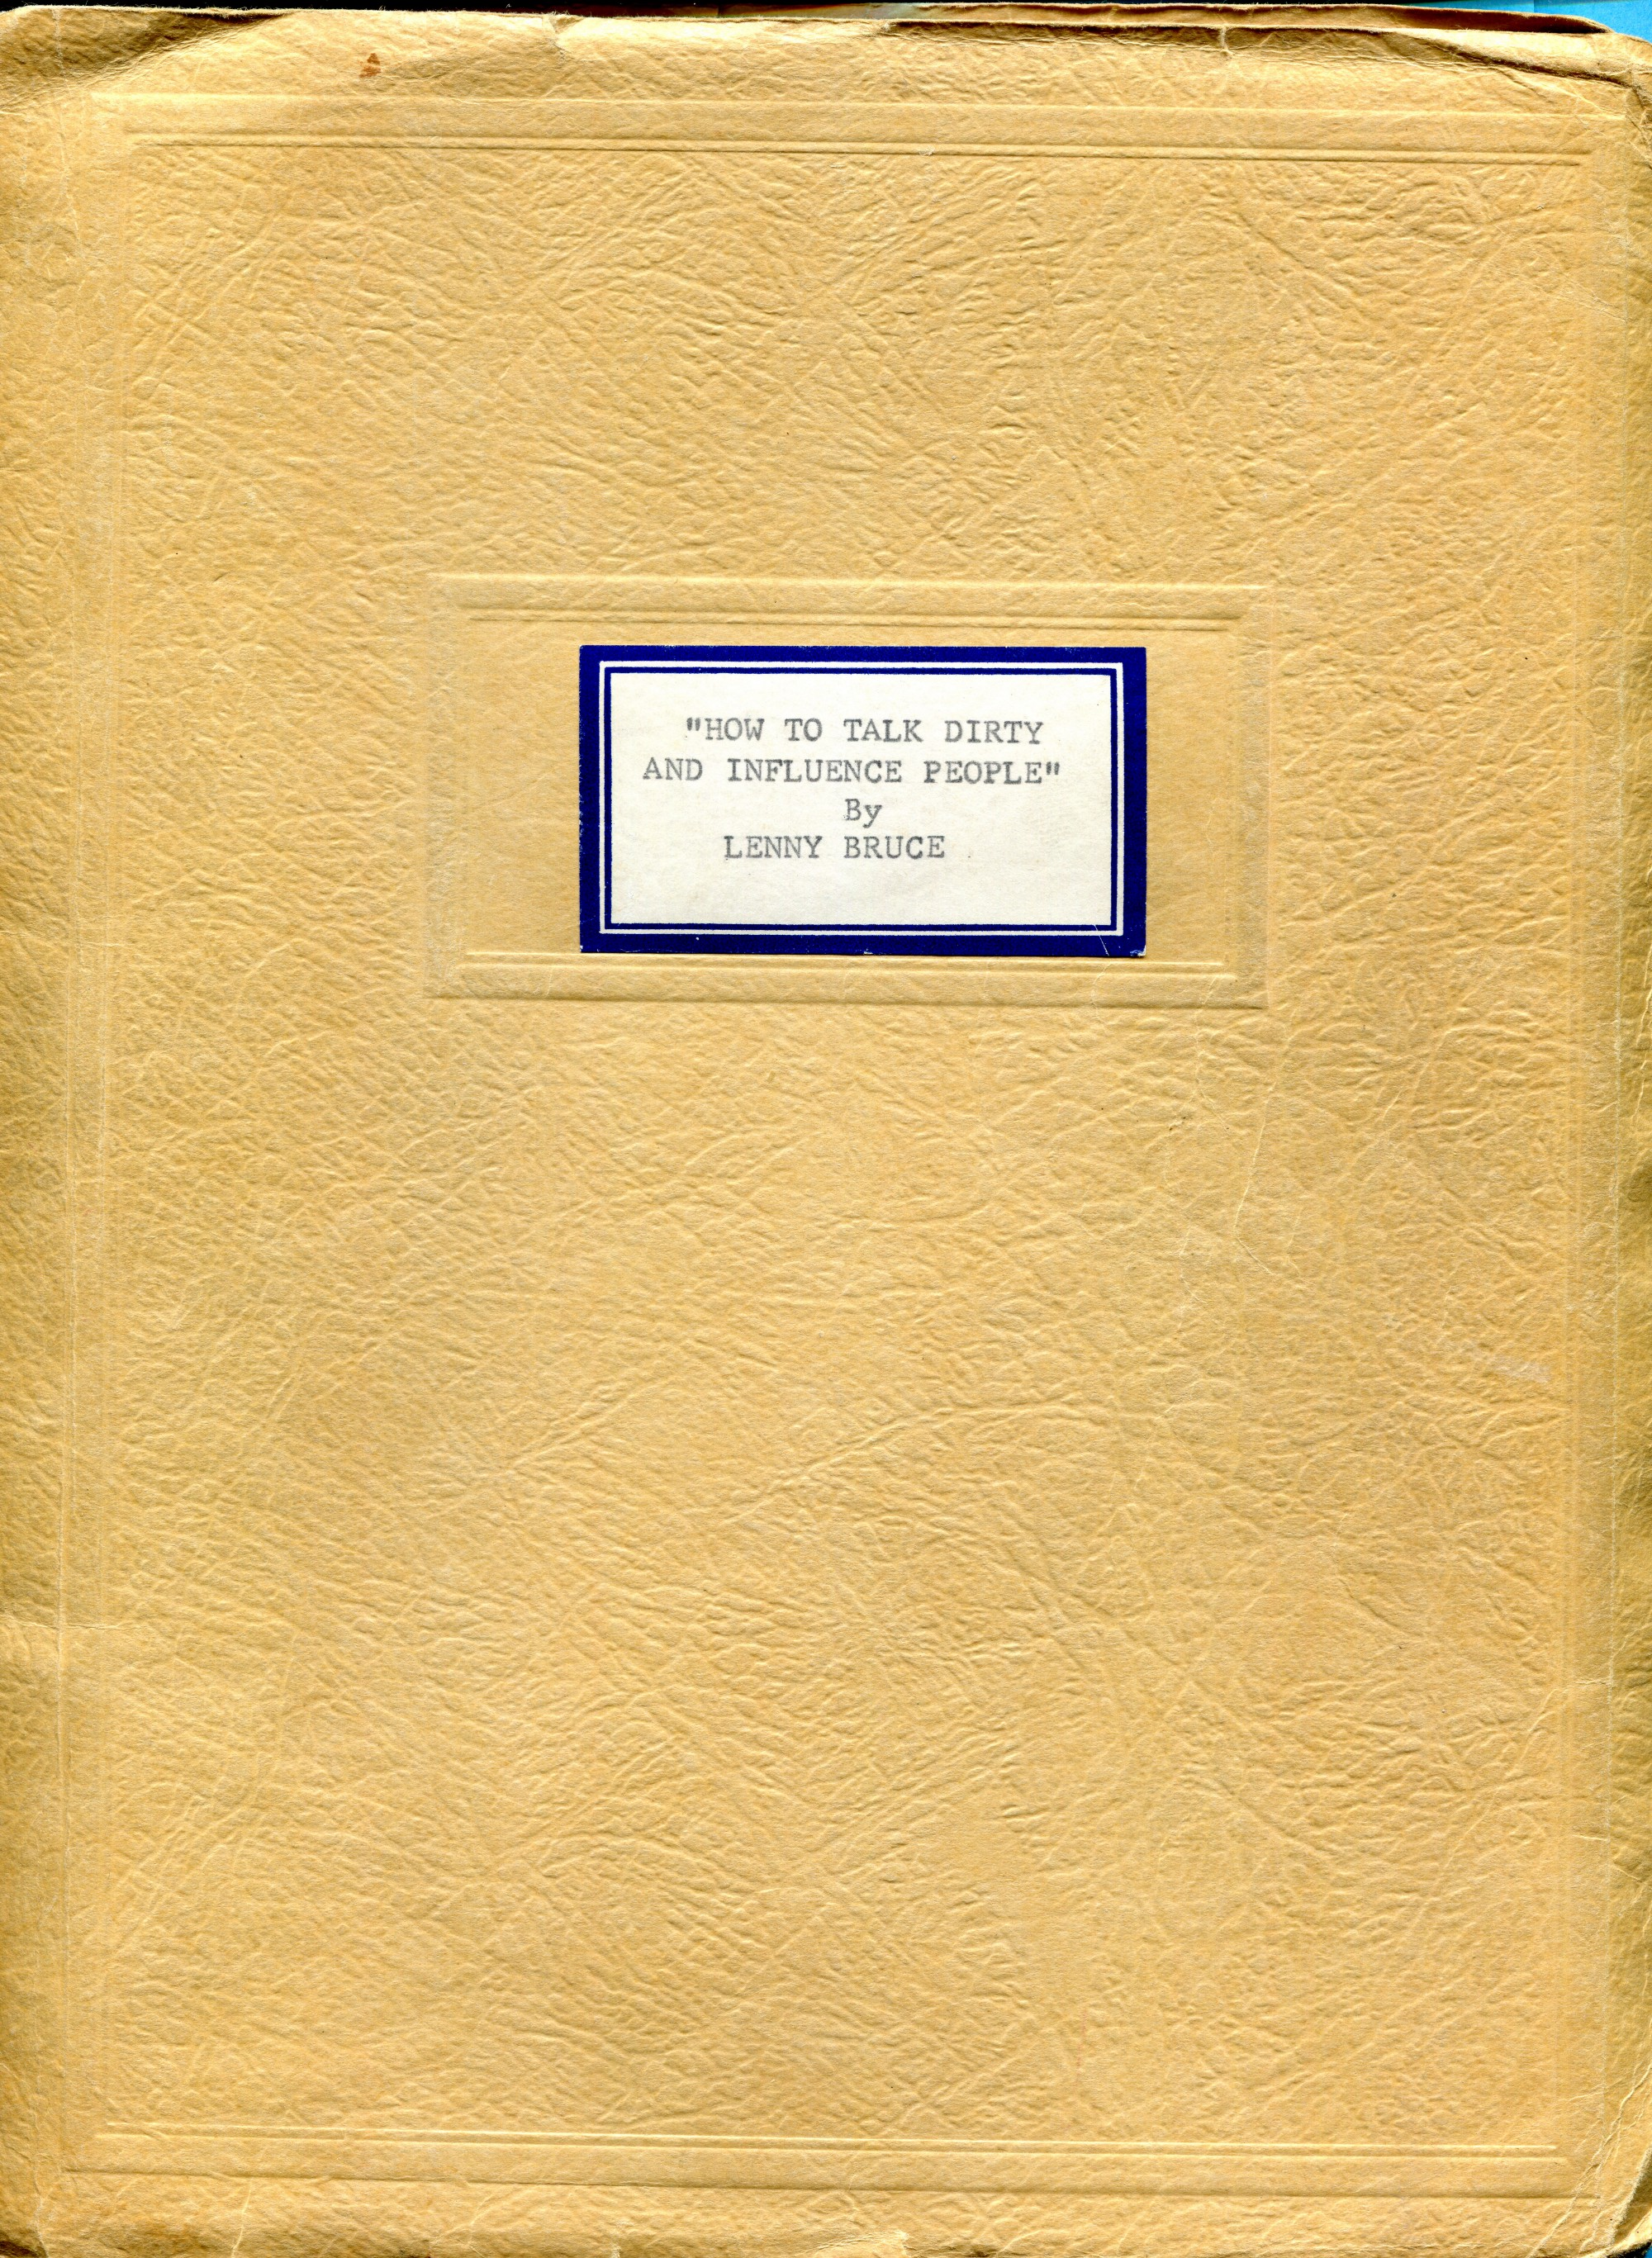 A very early copy of Bruce's book